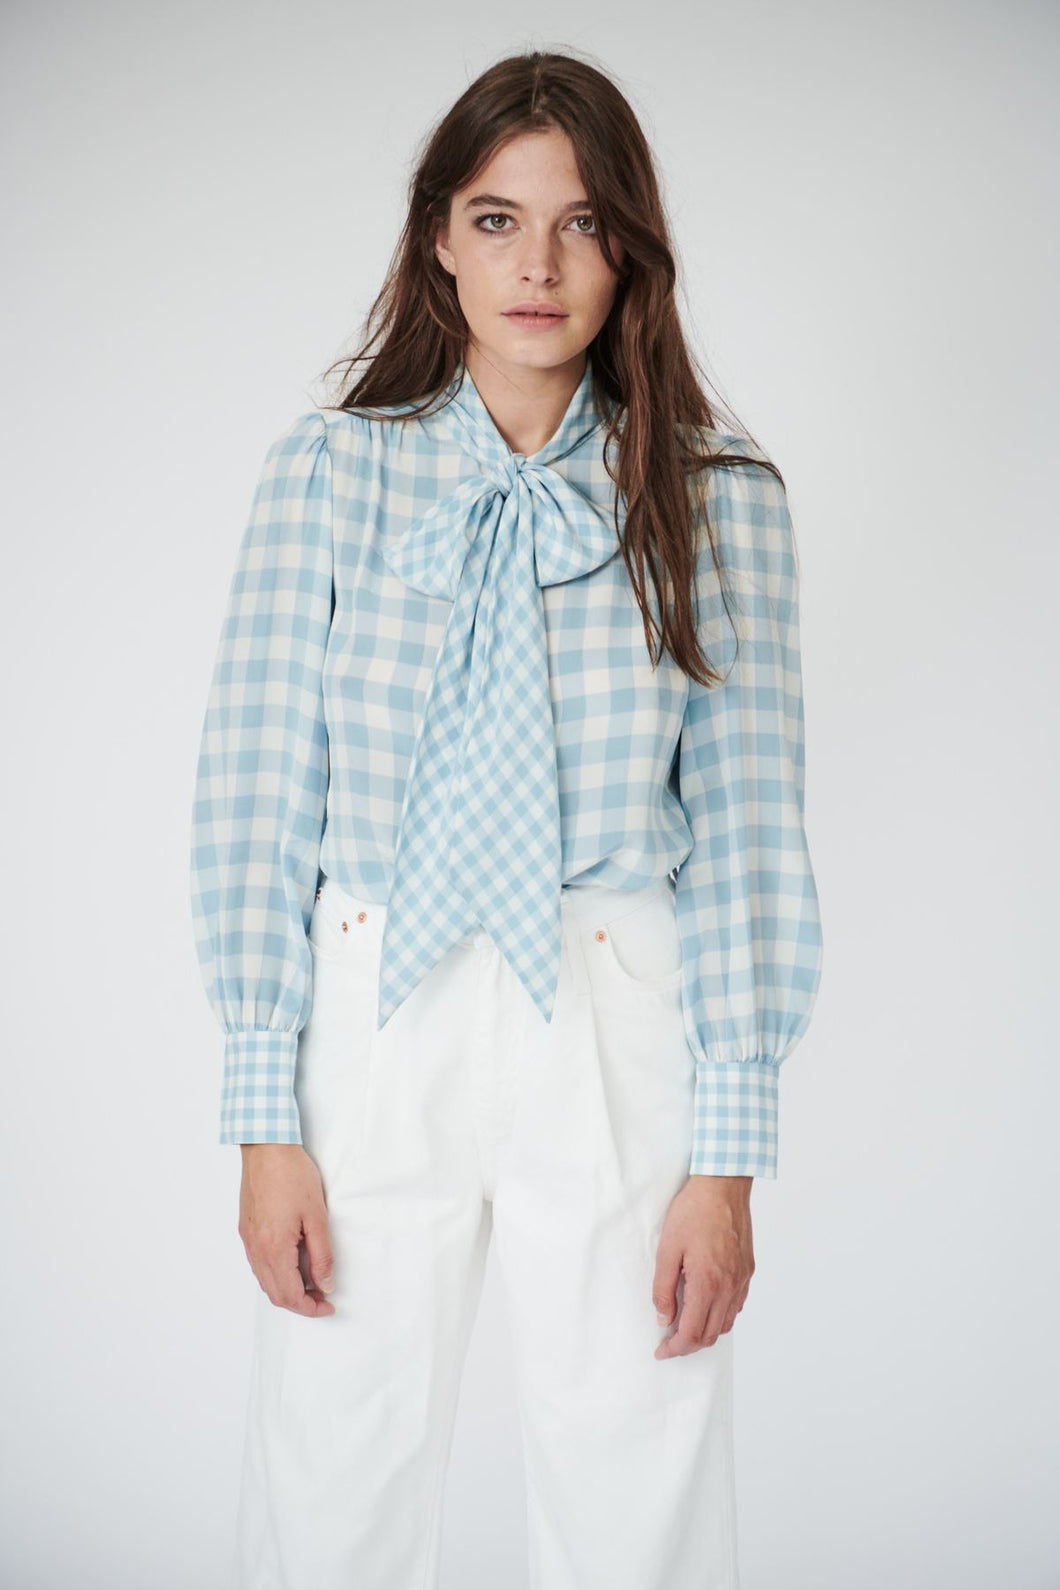 Pansy Pussybow in Blue Gingham